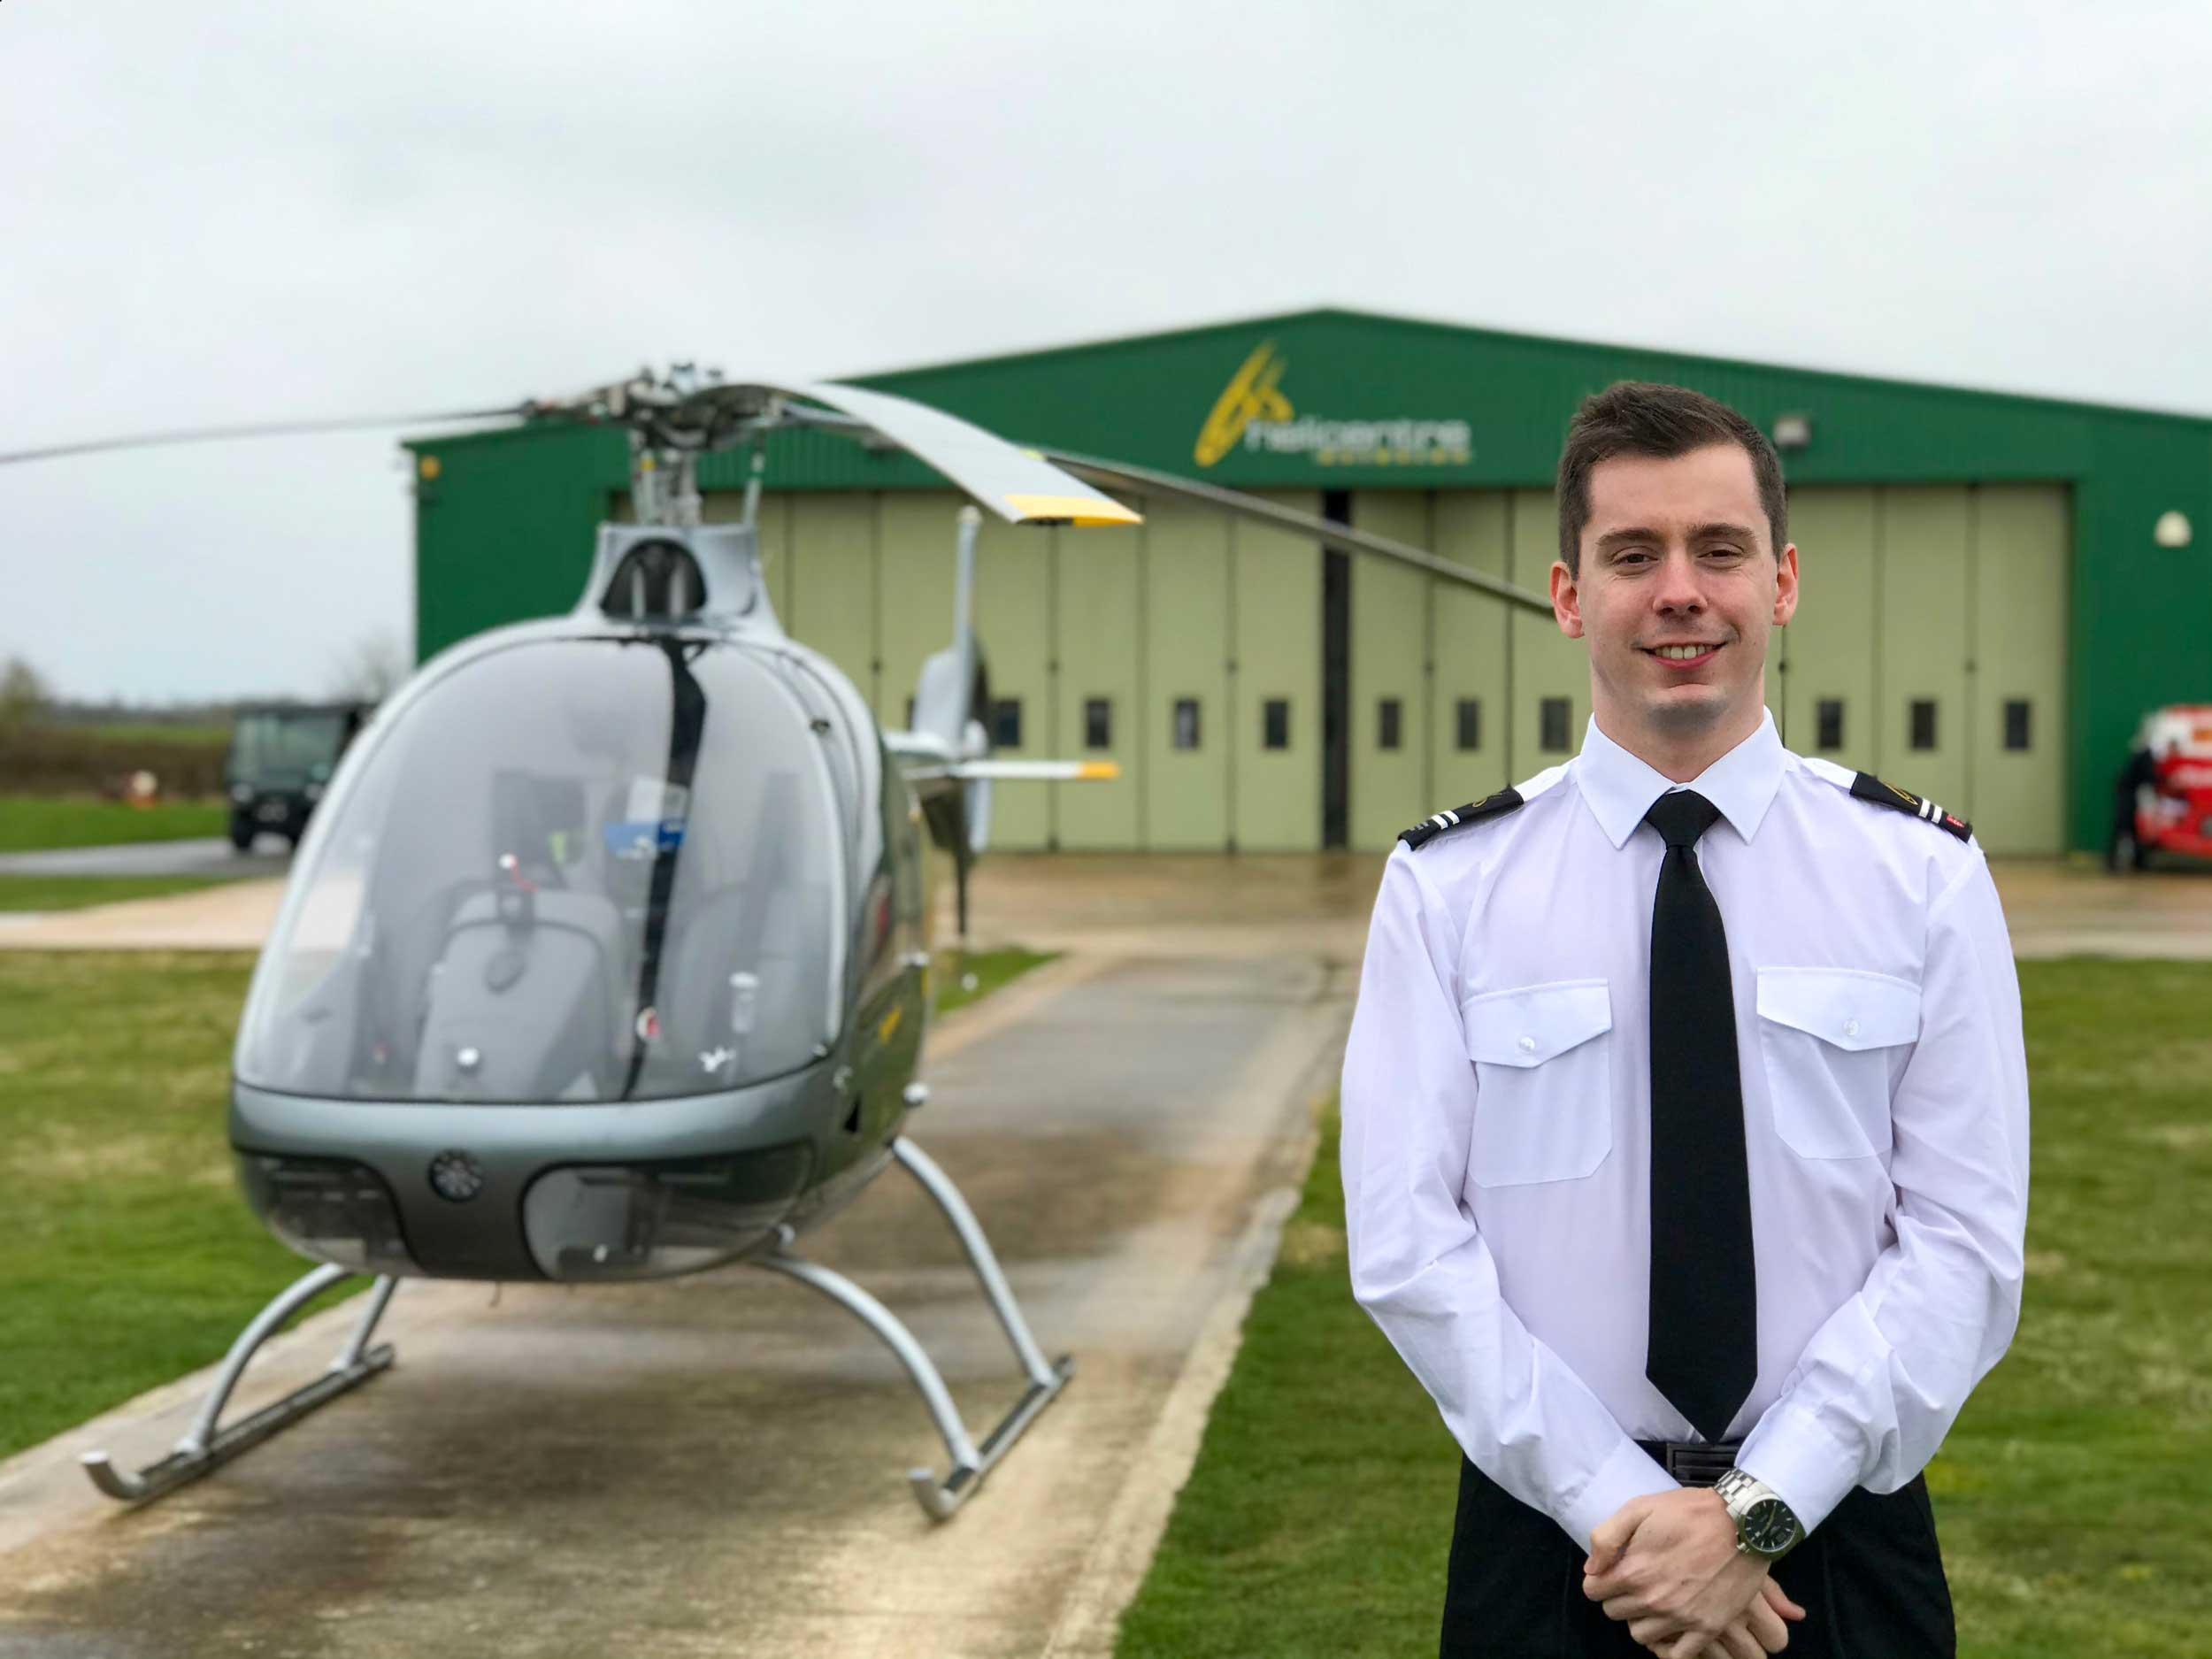 Helicentre scholarship